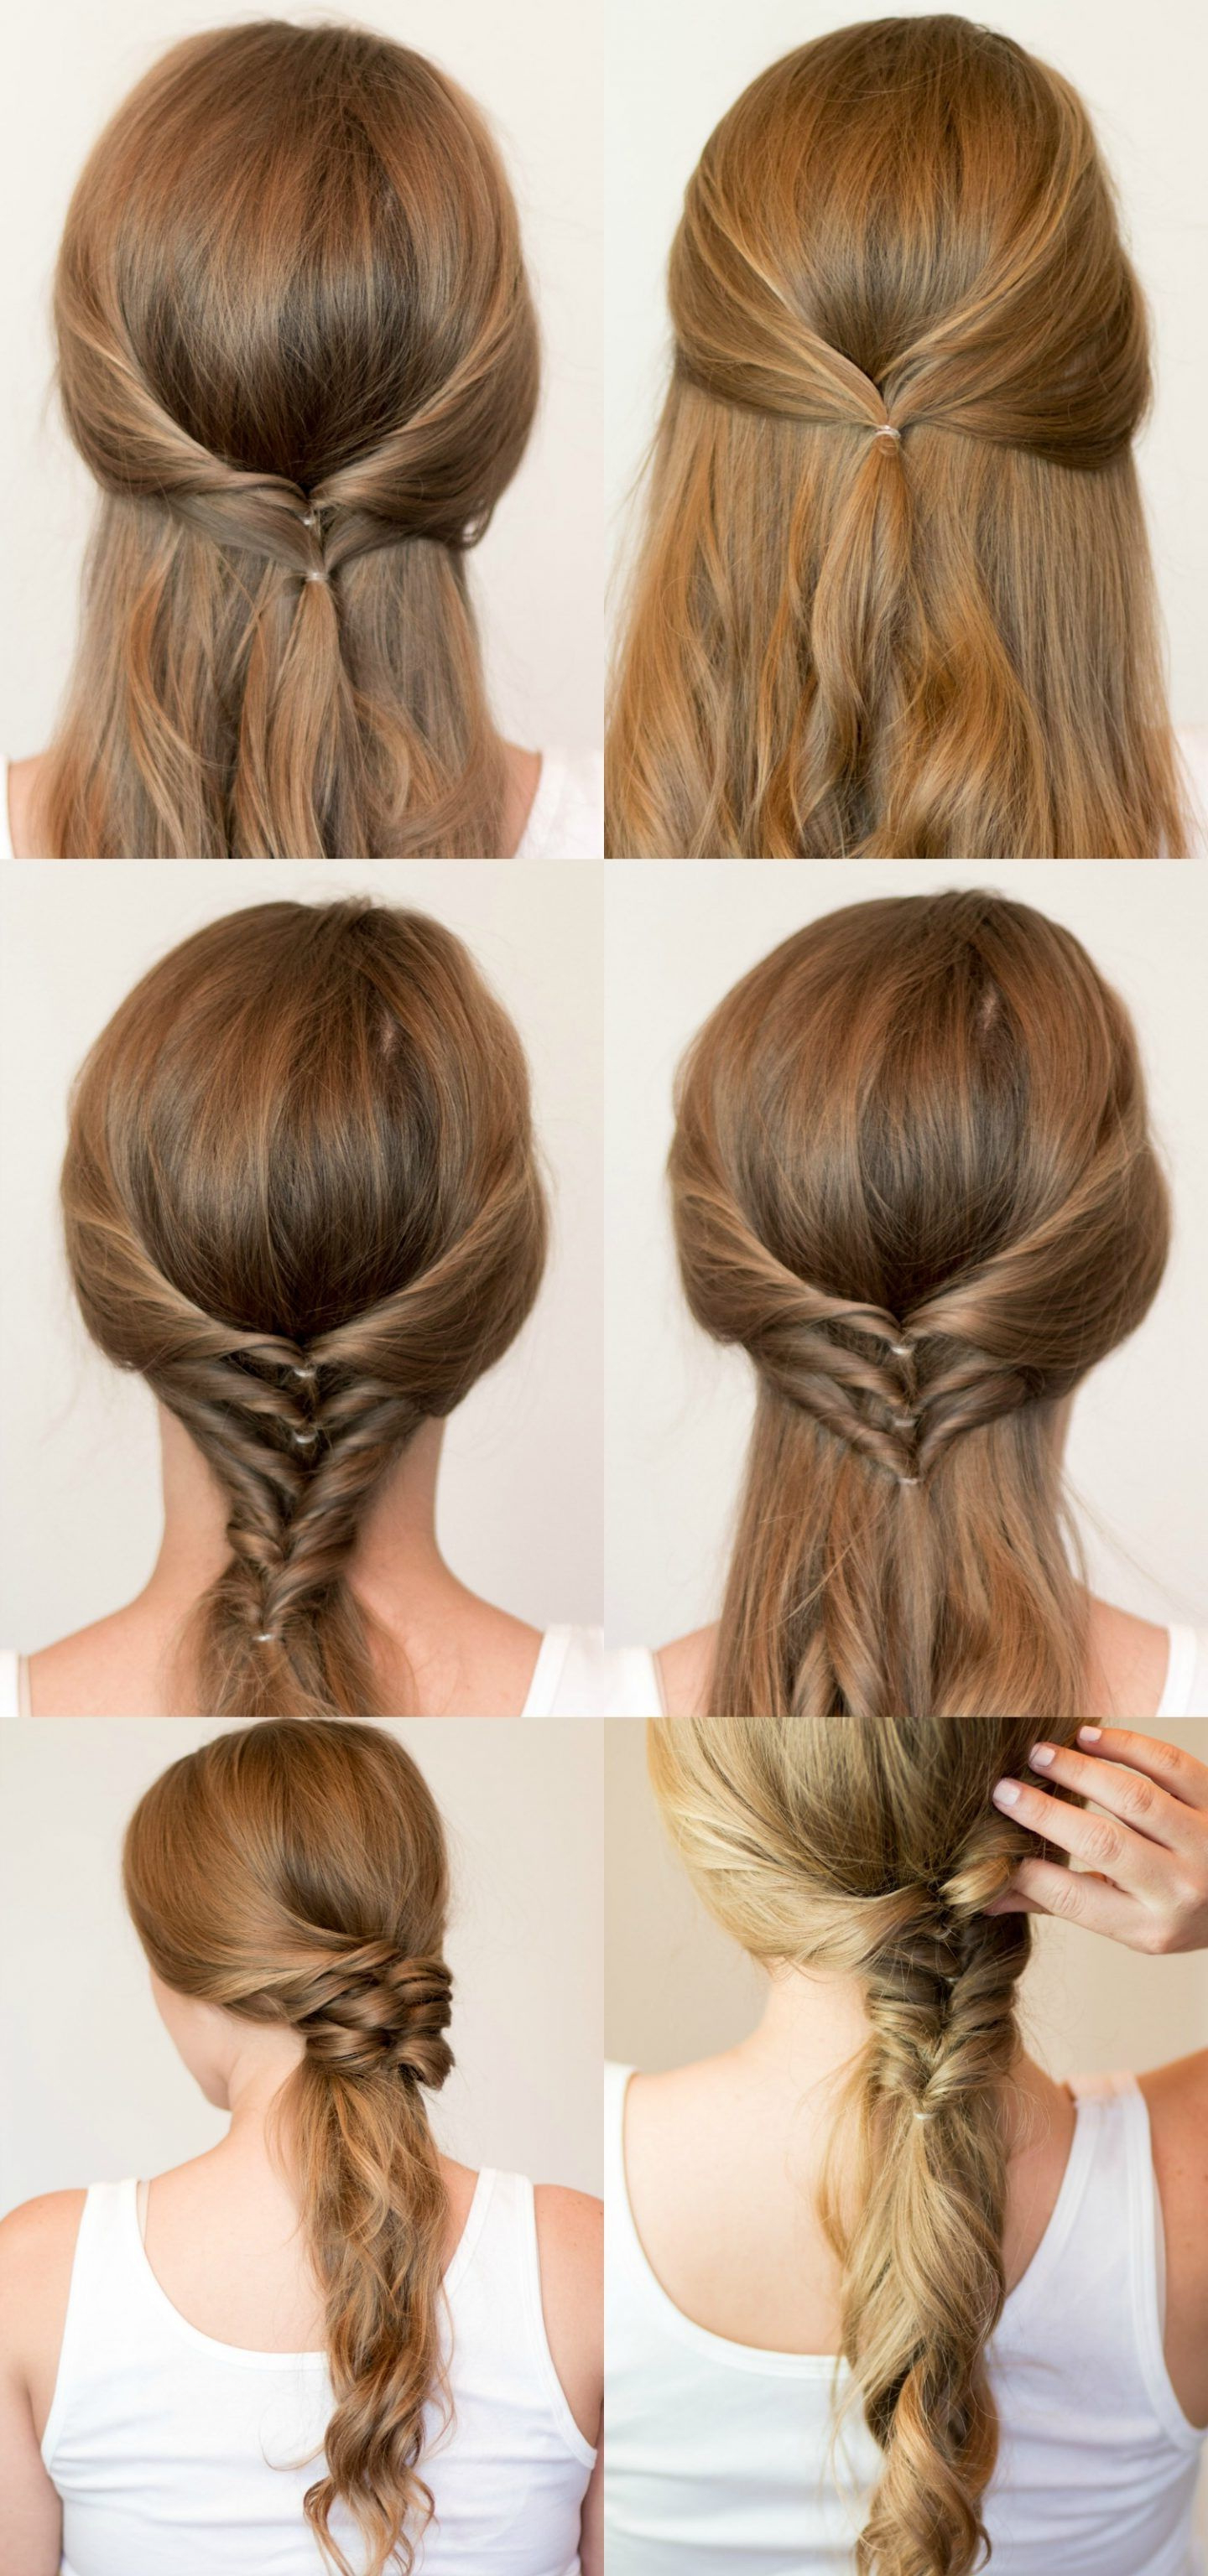 Fashion : Excellent Ponytail Fishtail Braid Hairstyles Within Well Known Ponytail Fishtail Braided Hairstyles (View 4 of 20)